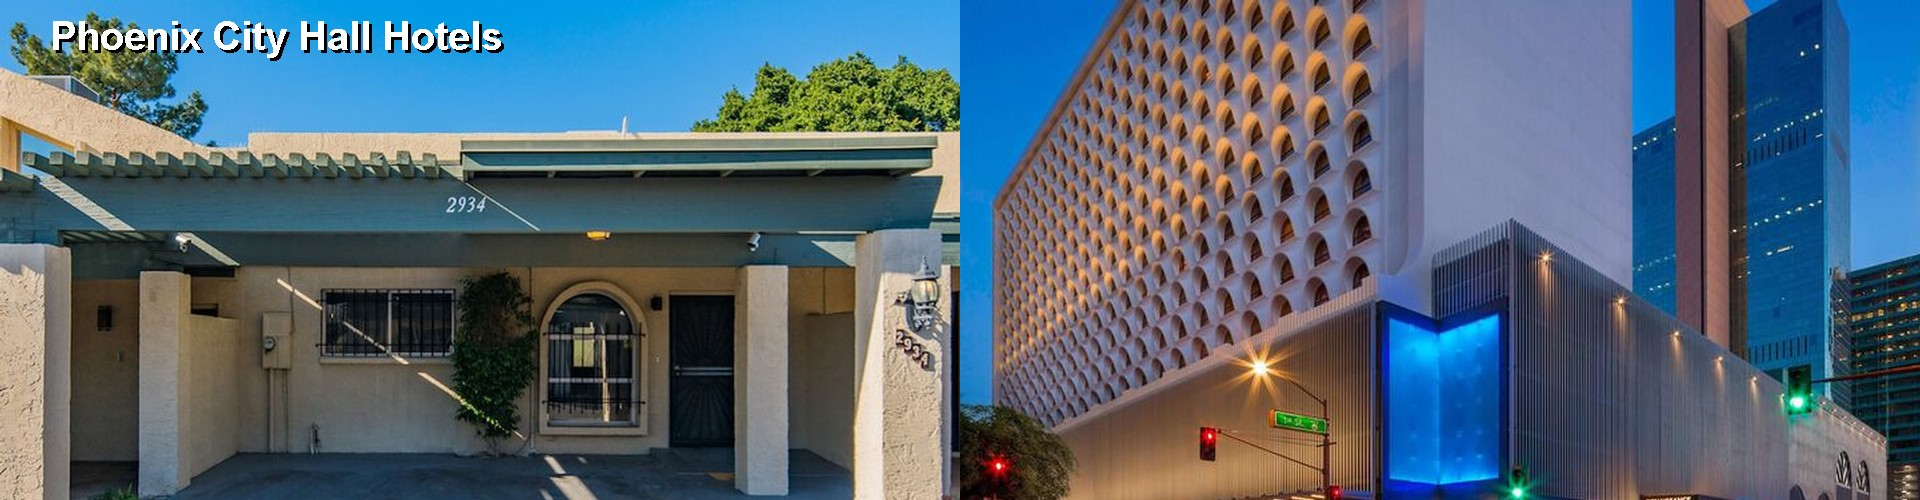 5 Best Hotels near Phoenix City Hall